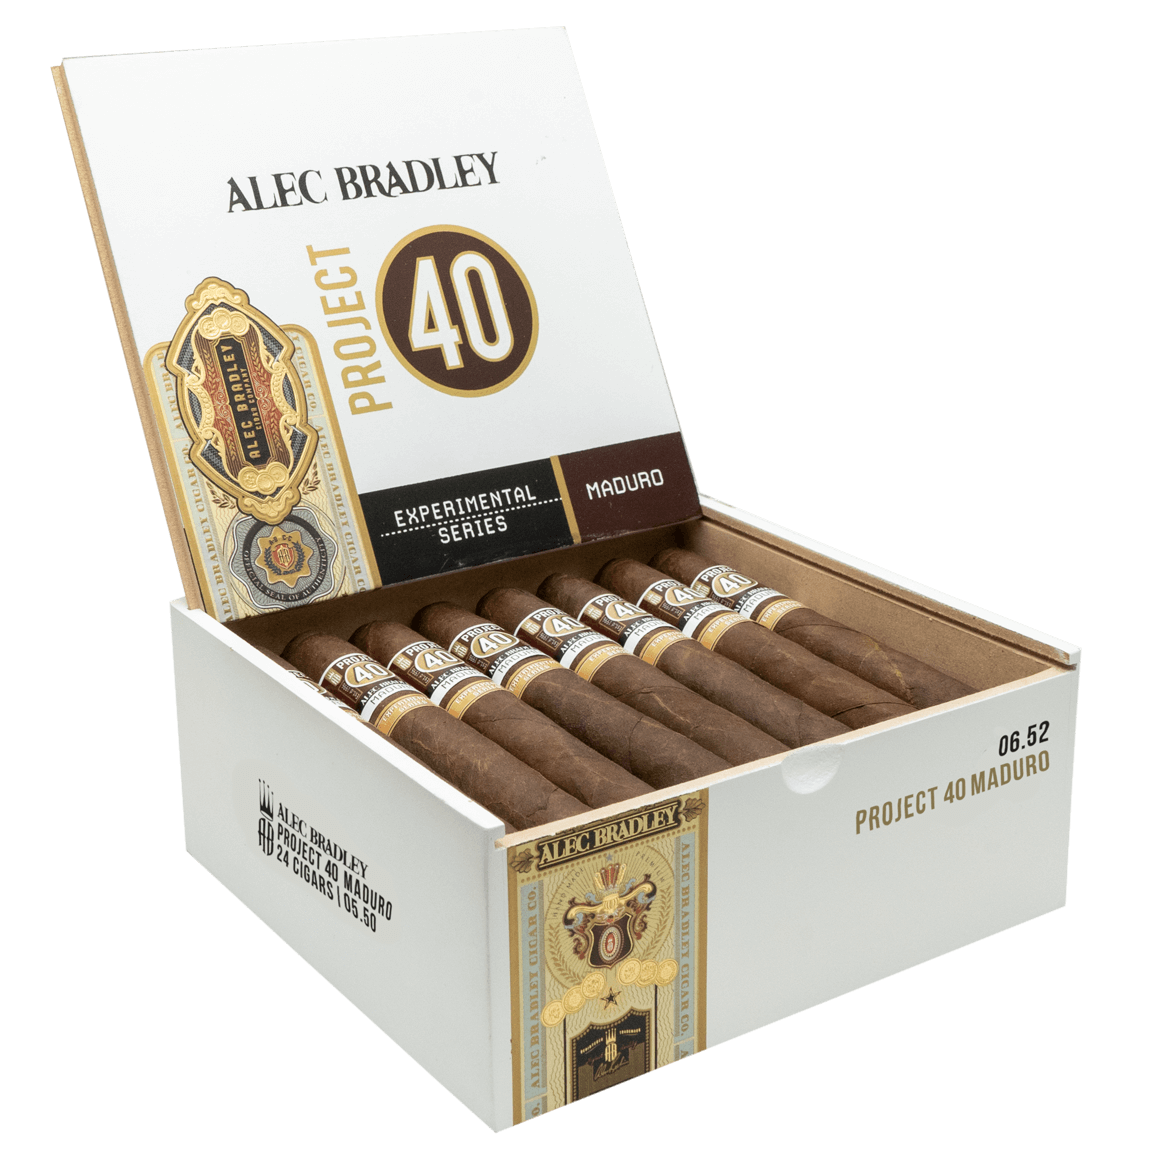 Cigar News: Alec Bradley Adds Project 40 Maduro Extension